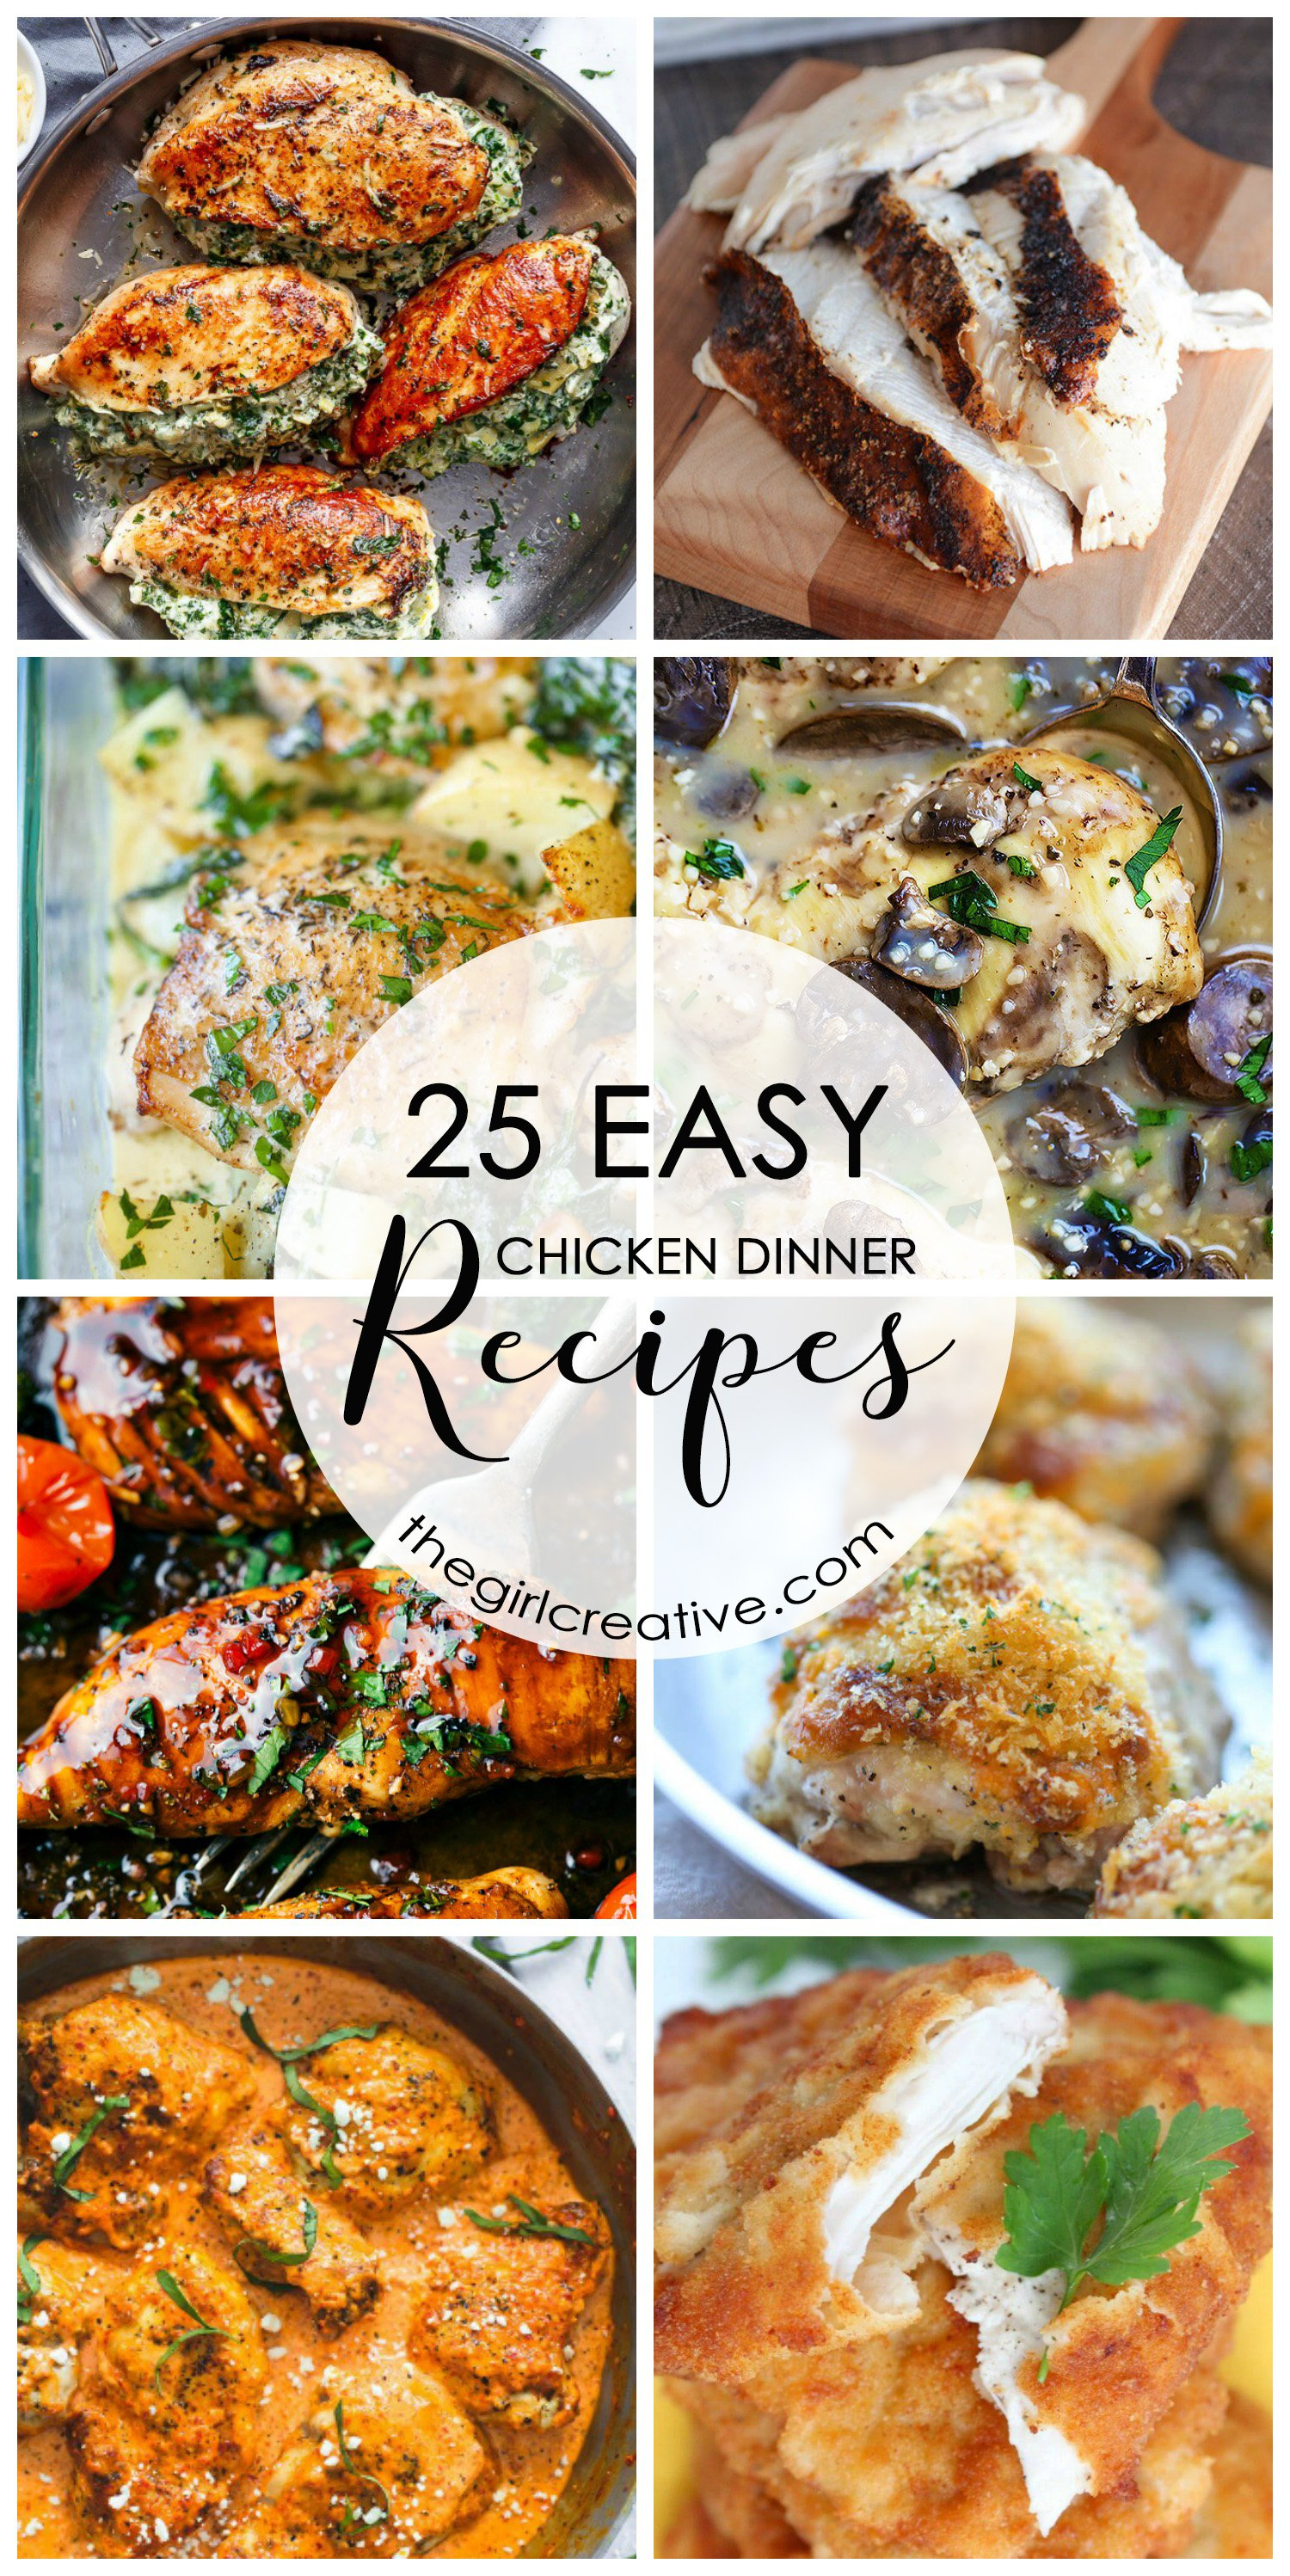 25 easy chicken dinner recipes the girl creative for Things to make for dinner with chicken